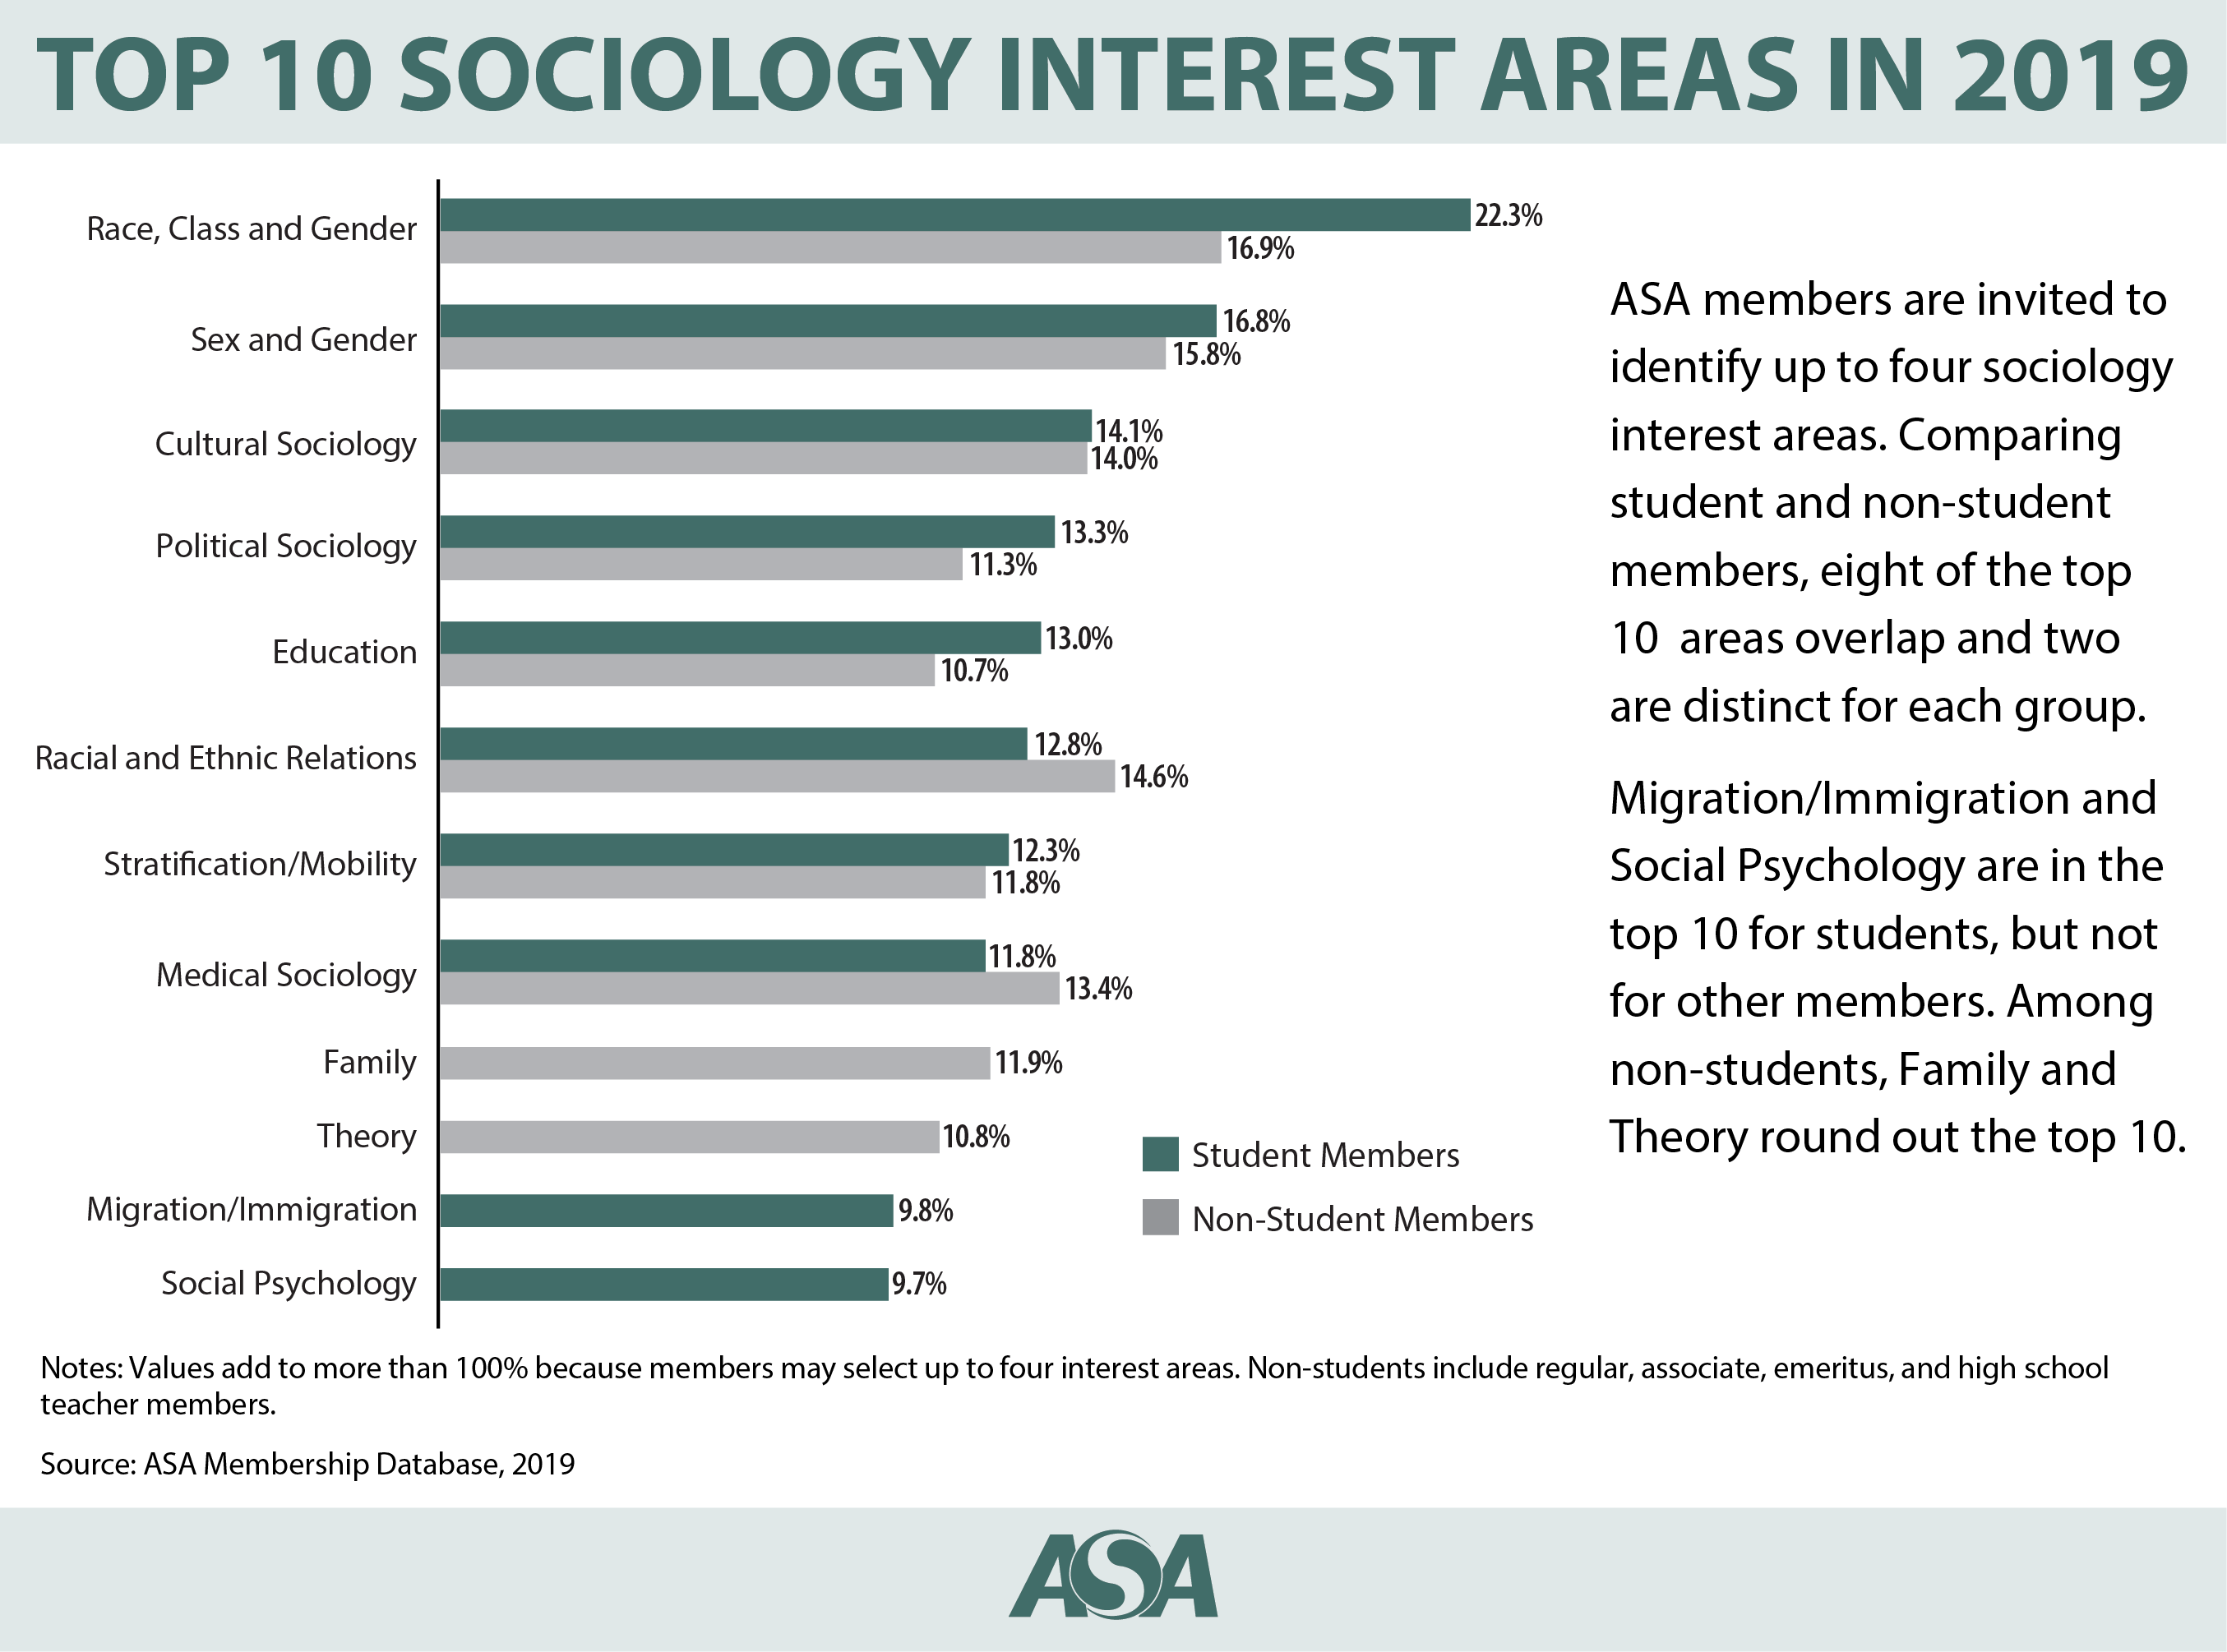 Top 10 Sociology Interest Areas in 2019